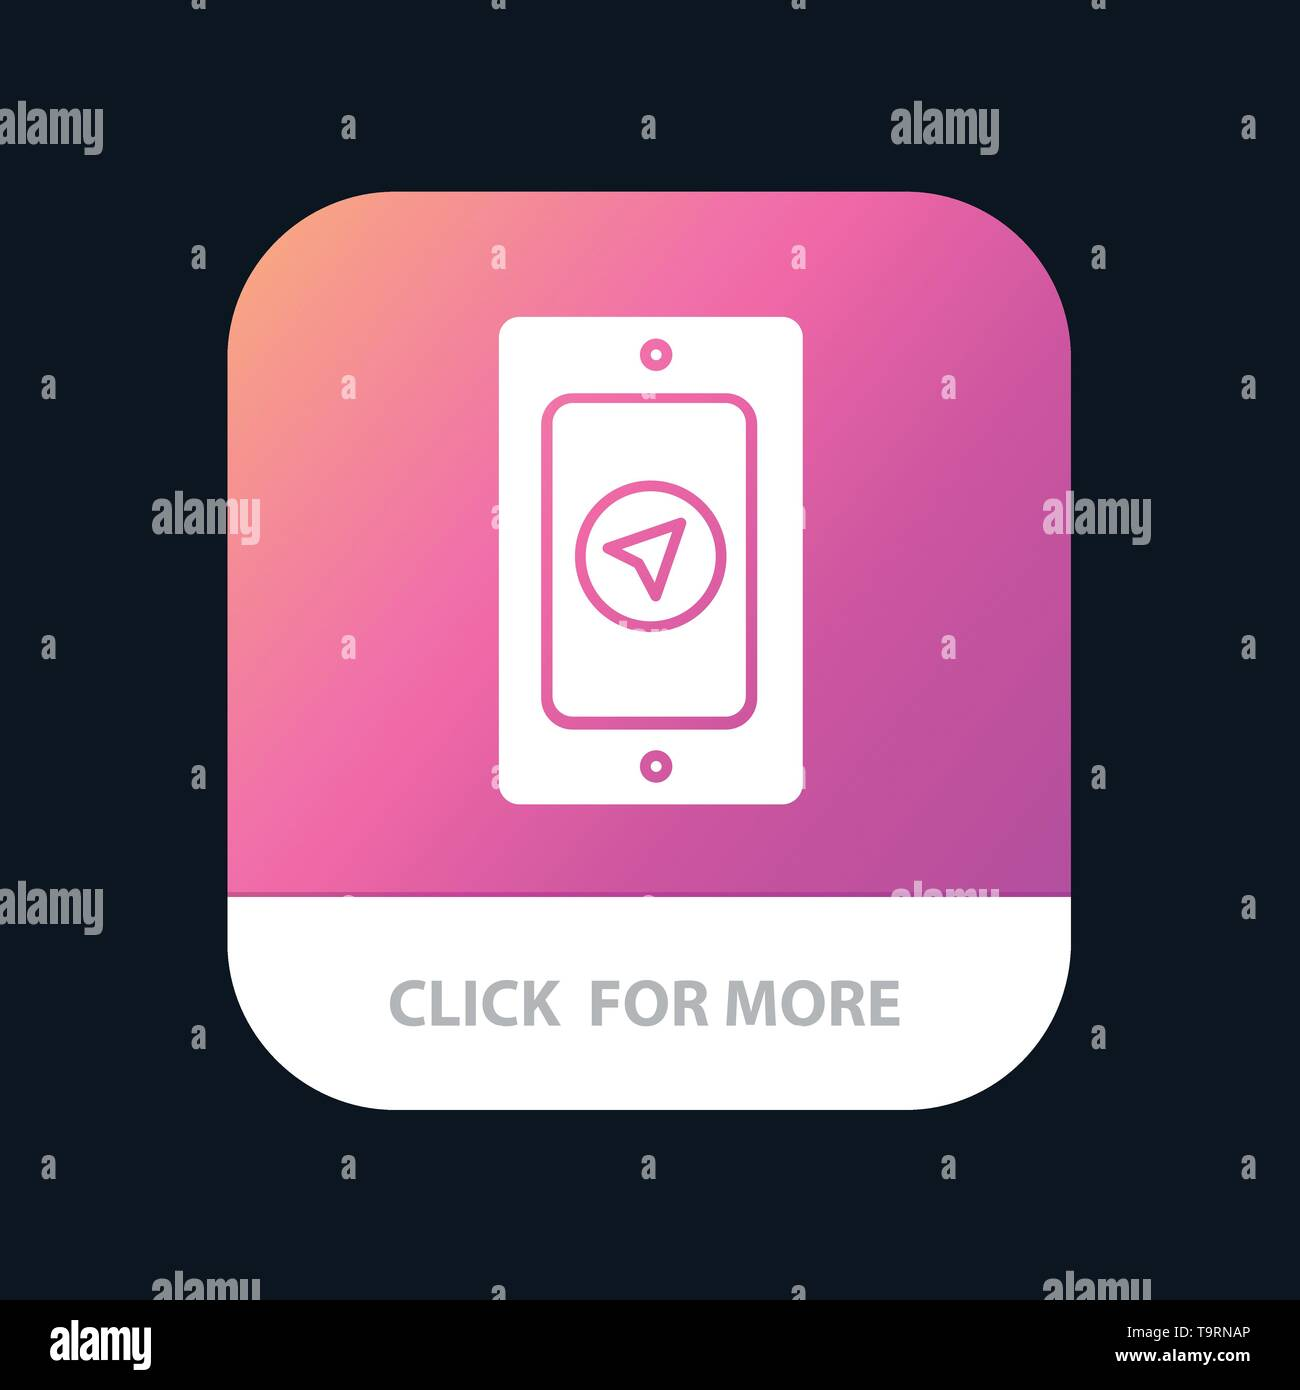 Mobile, Pin, Rainy Mobile App Button. Android and IOS Glyph Version - Stock Image